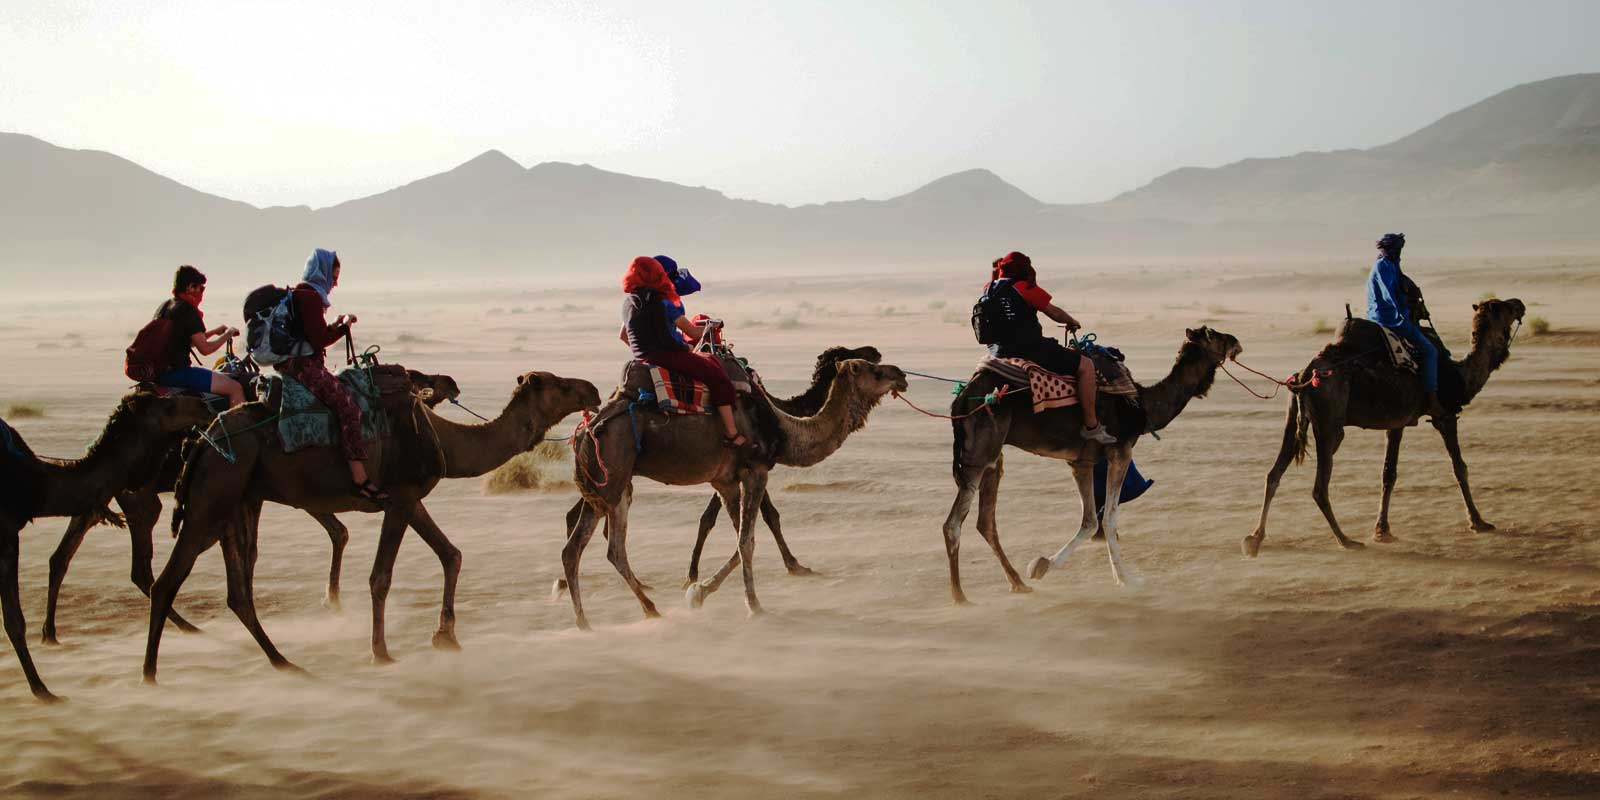 Ride camels, explore souks, sip mint tea, and much more in beautiful Morocco.